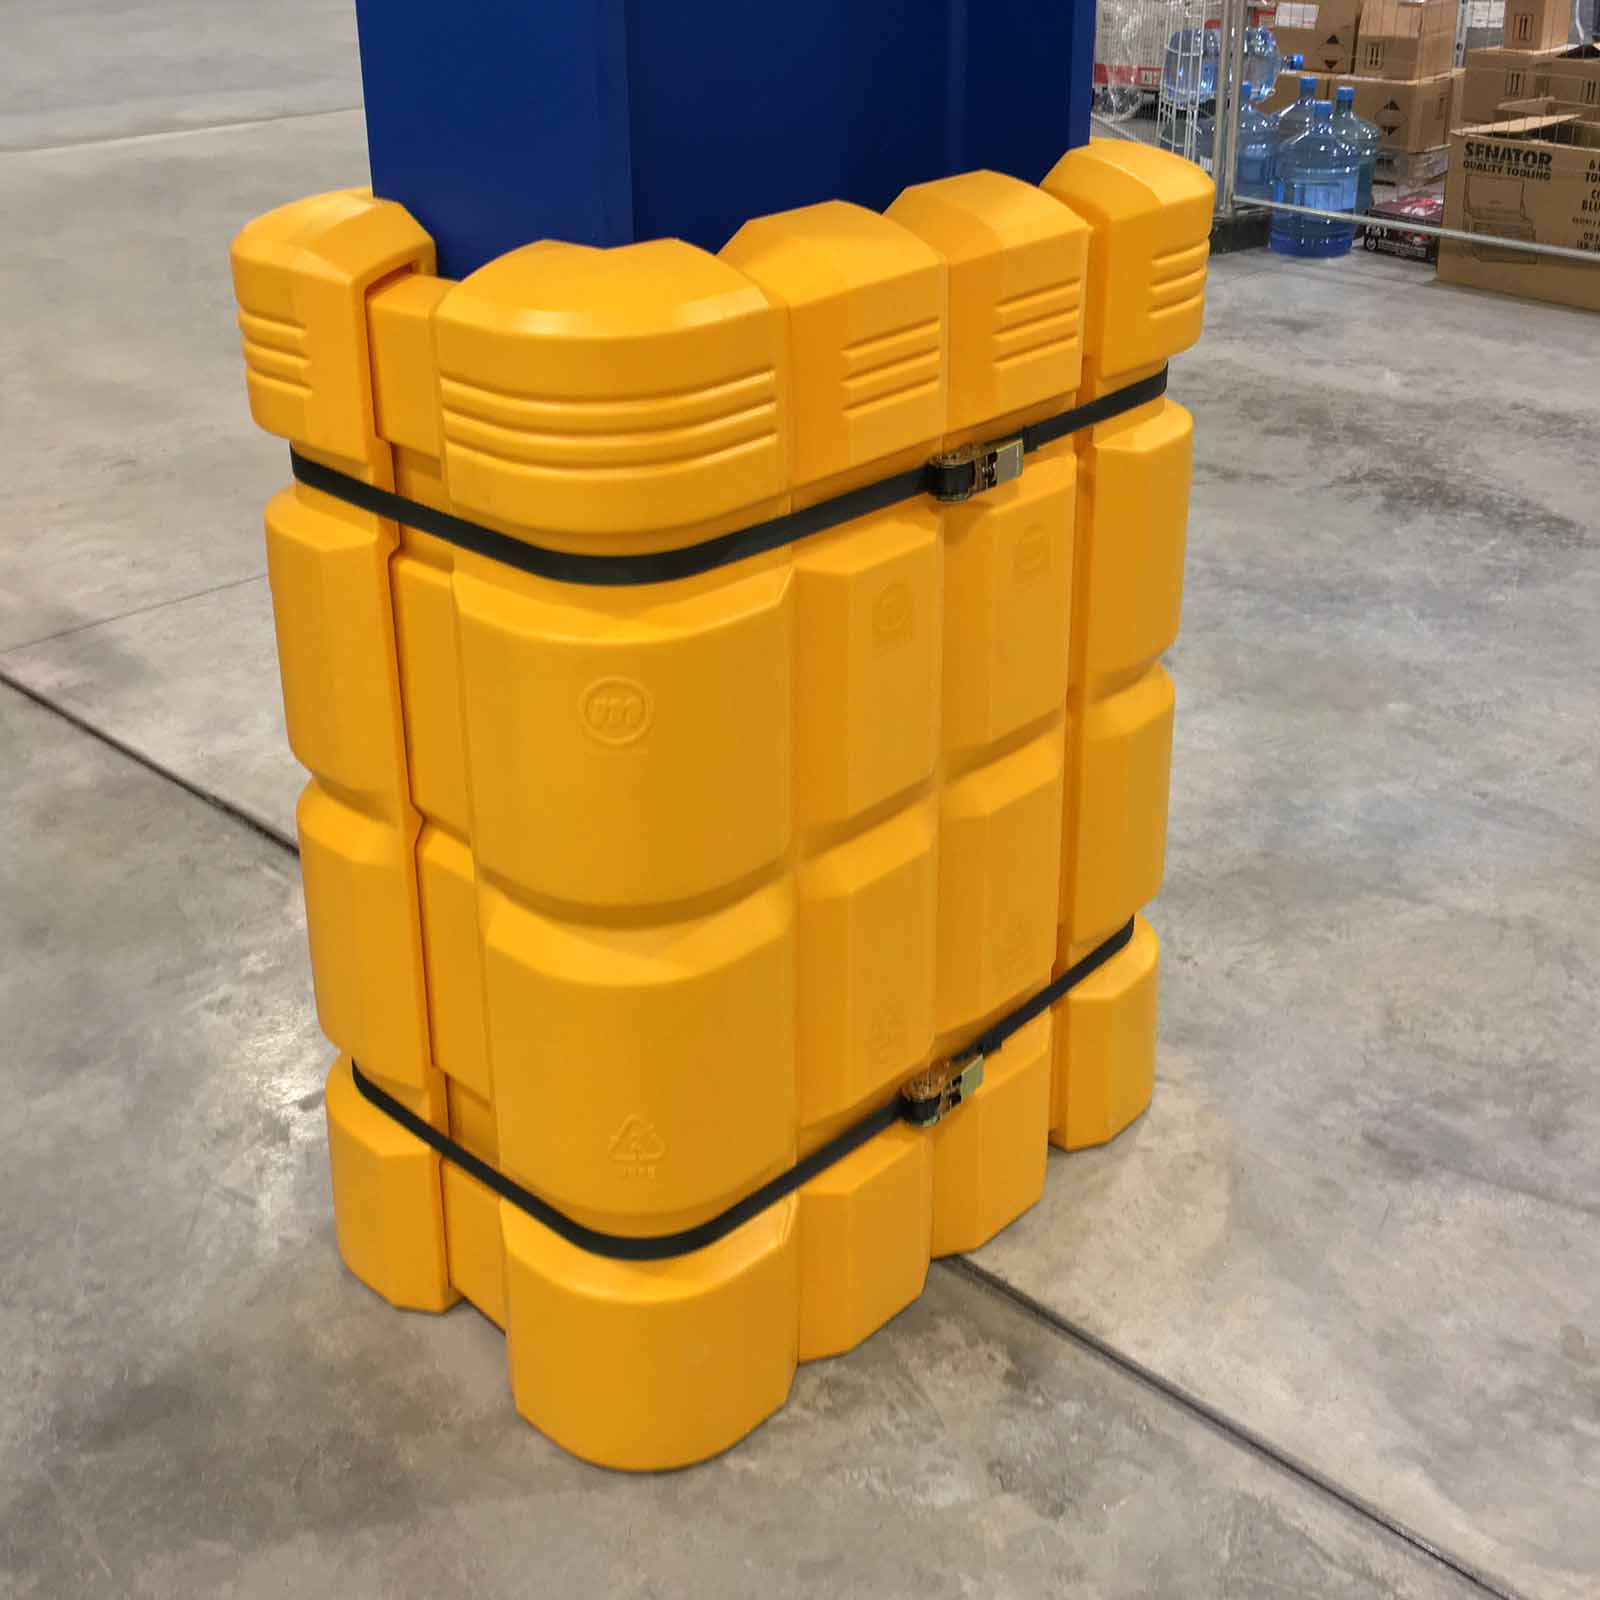 McCue Column Guard Safety Barrier Protection